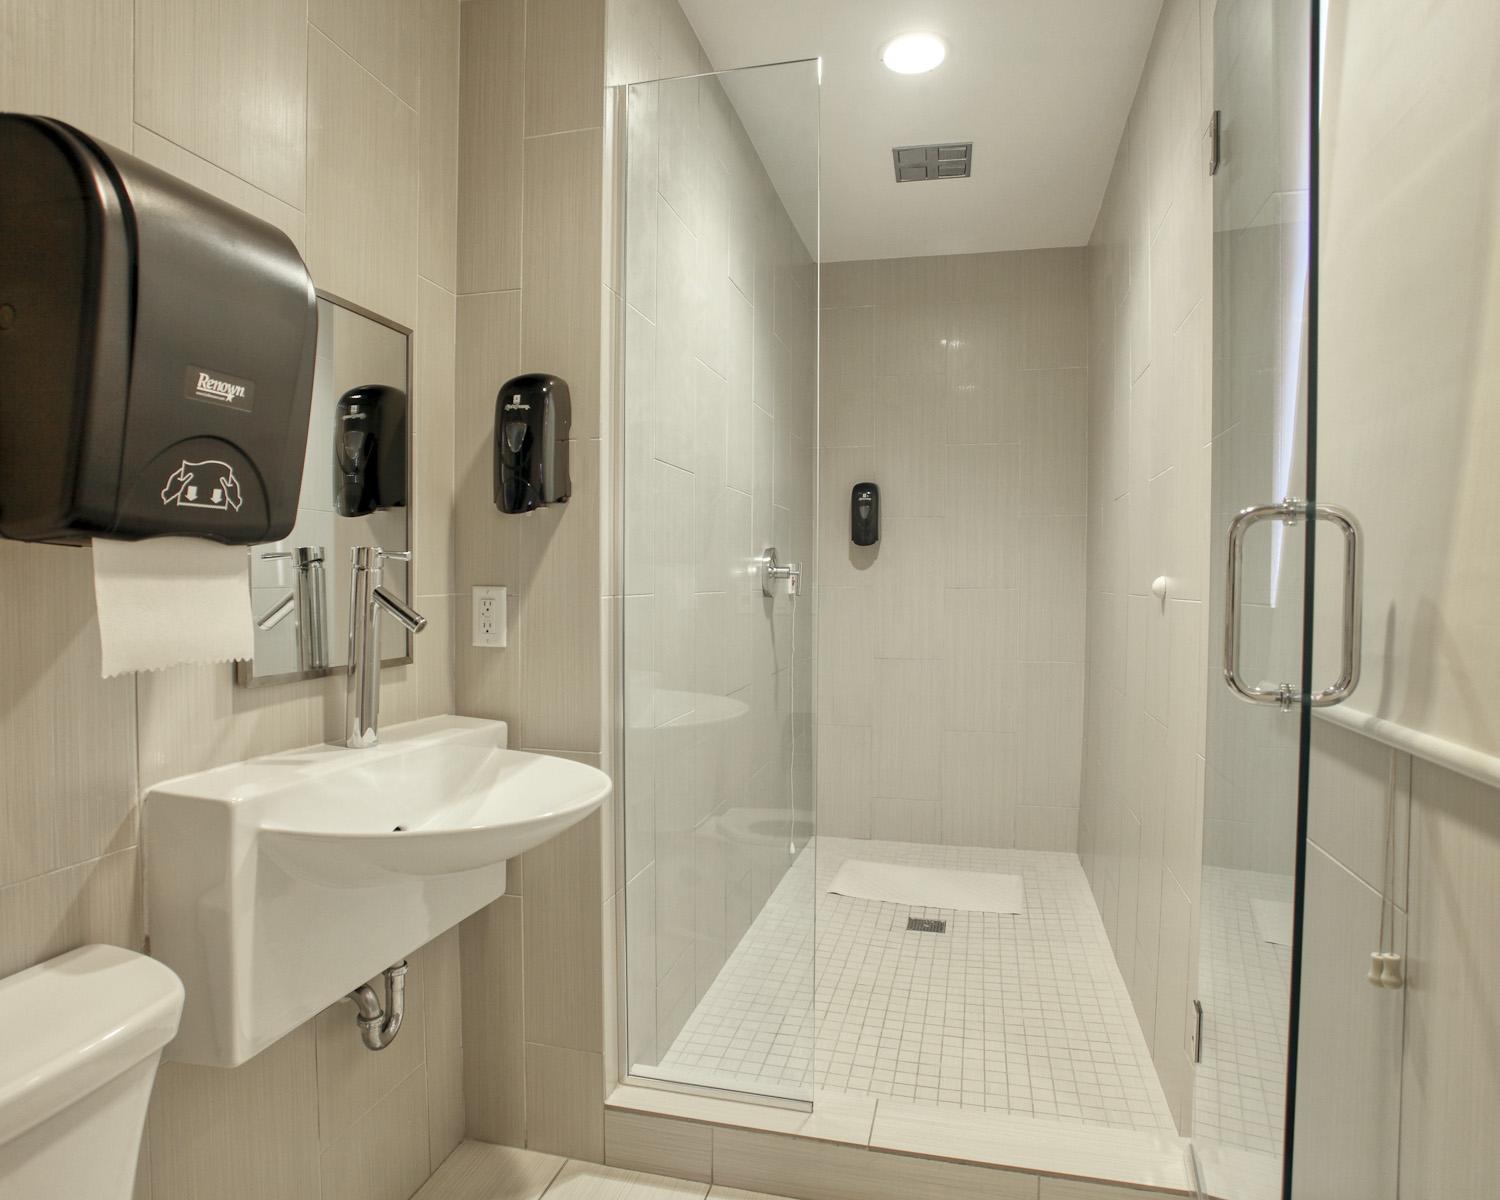 Fort Lauderdale detox center image 36 a large clean shower for when that helps